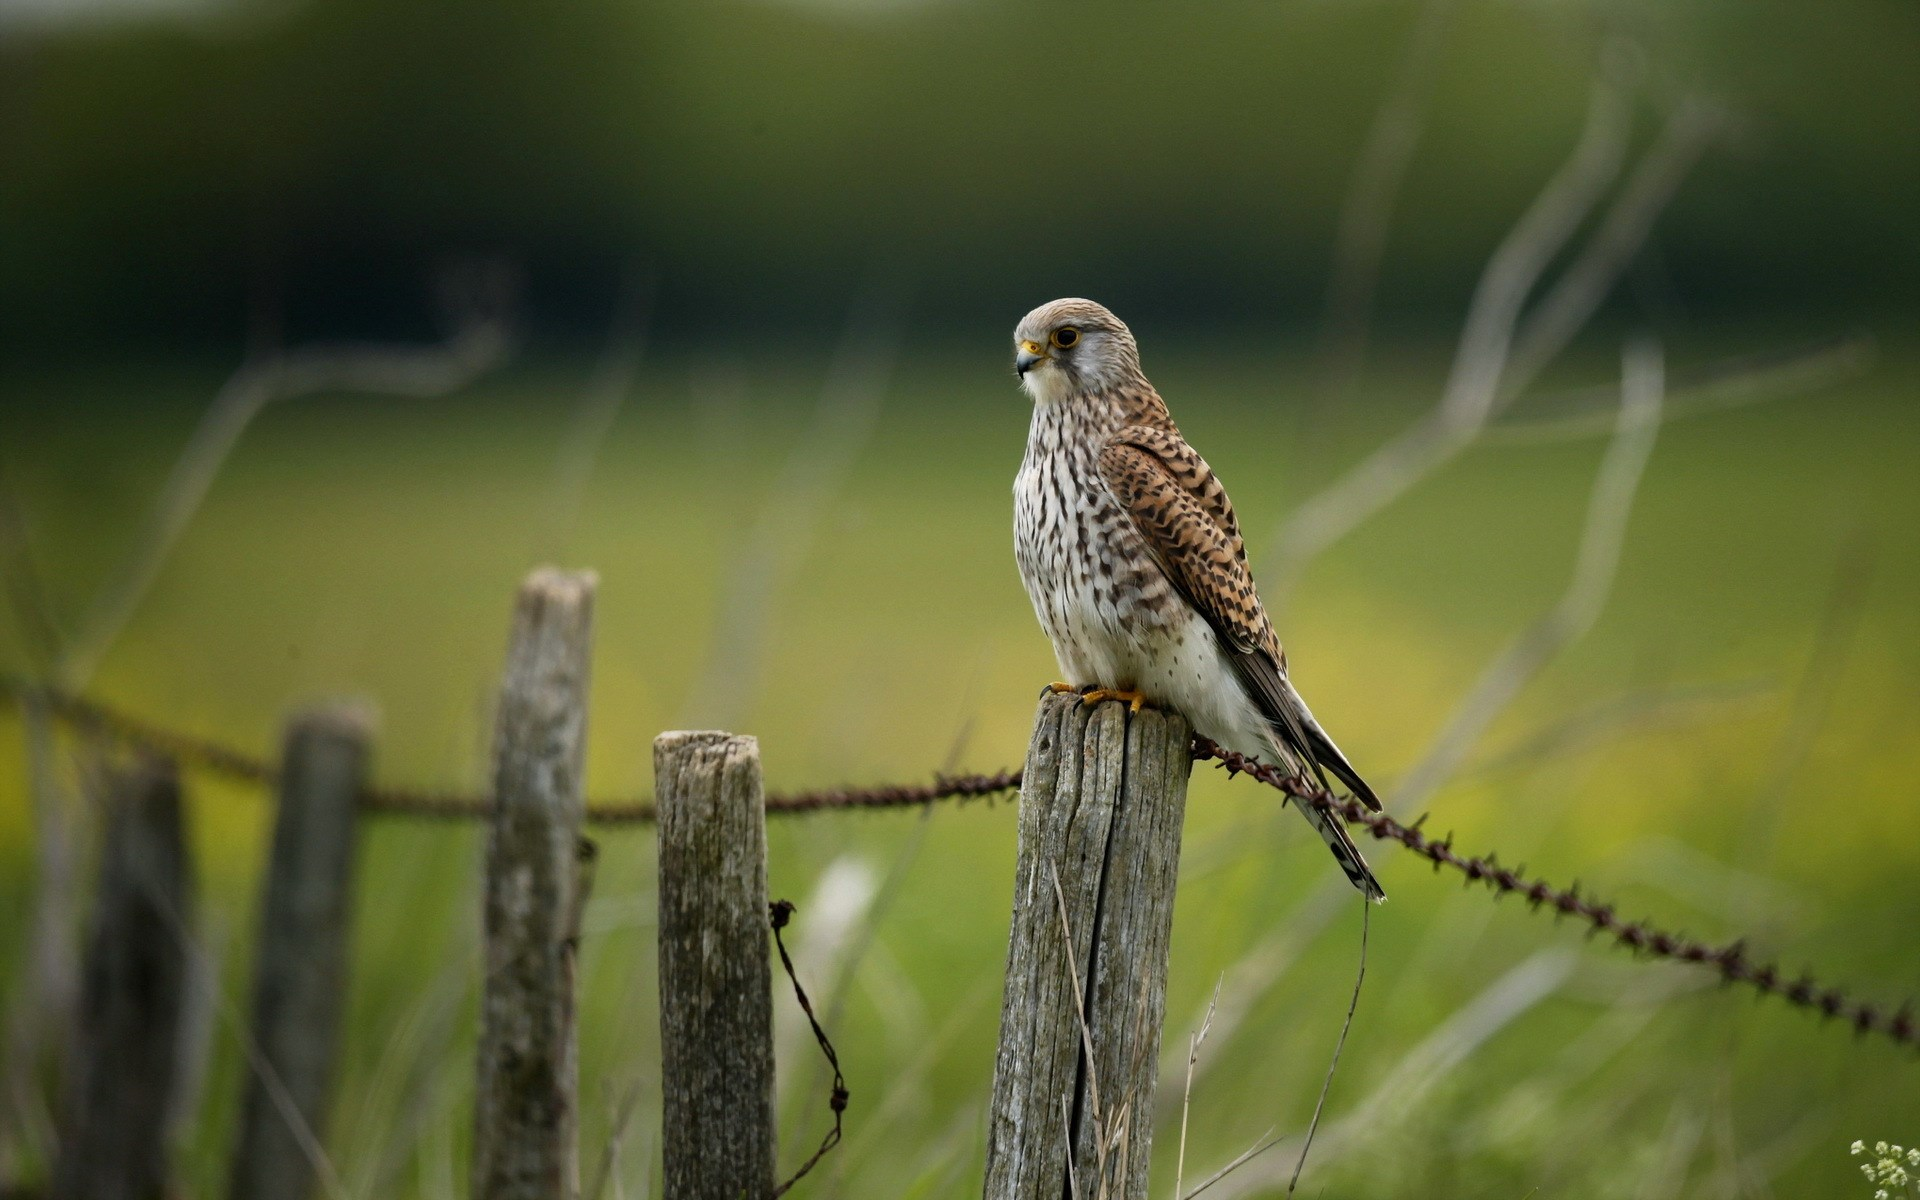 Falcon Bird Fence Nature